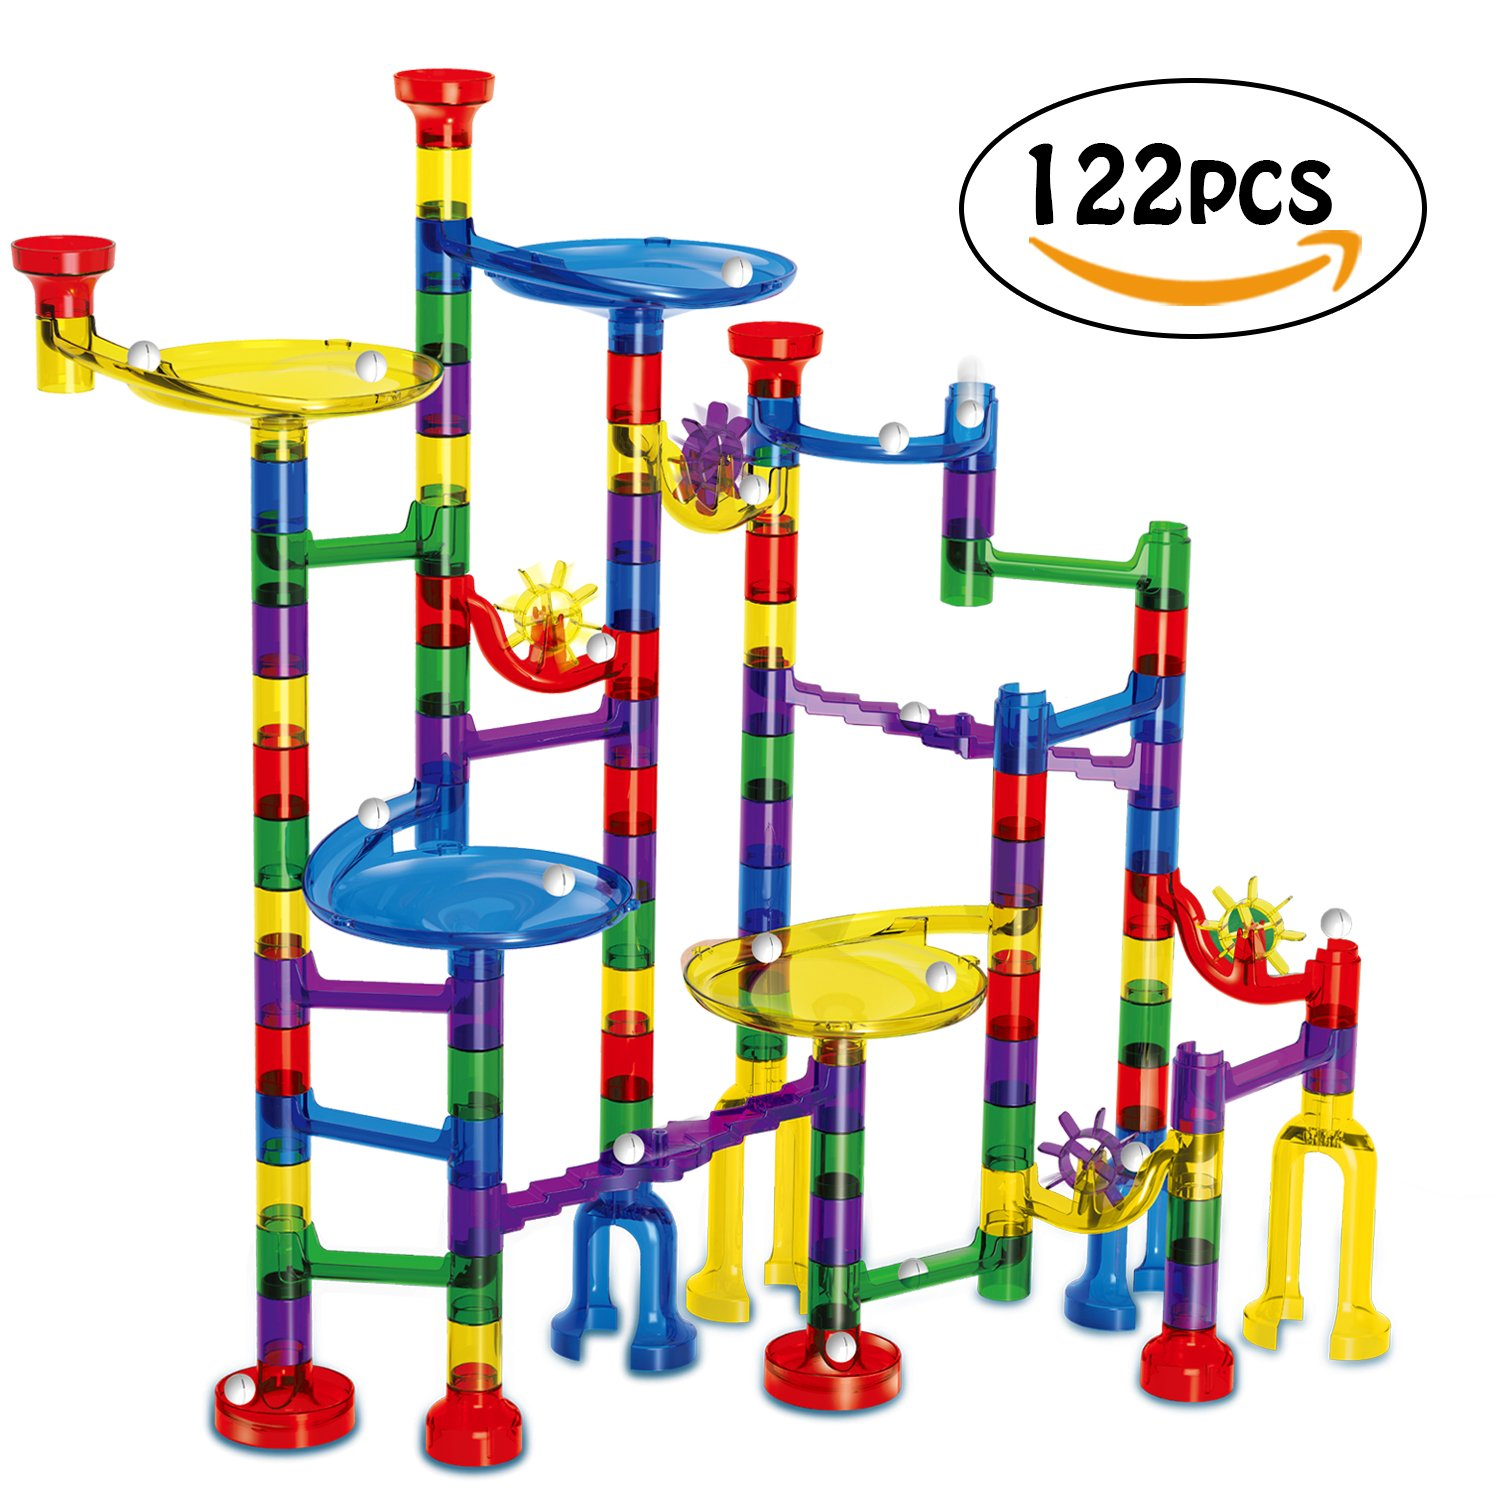 Marble Run Toy - Meland 122 Pcs Pipeline Game STEM Learning Toy, Educational Construction Building Blocks Toy Set, Gift for Kids 4 5 6 + Year Old Boys Girls